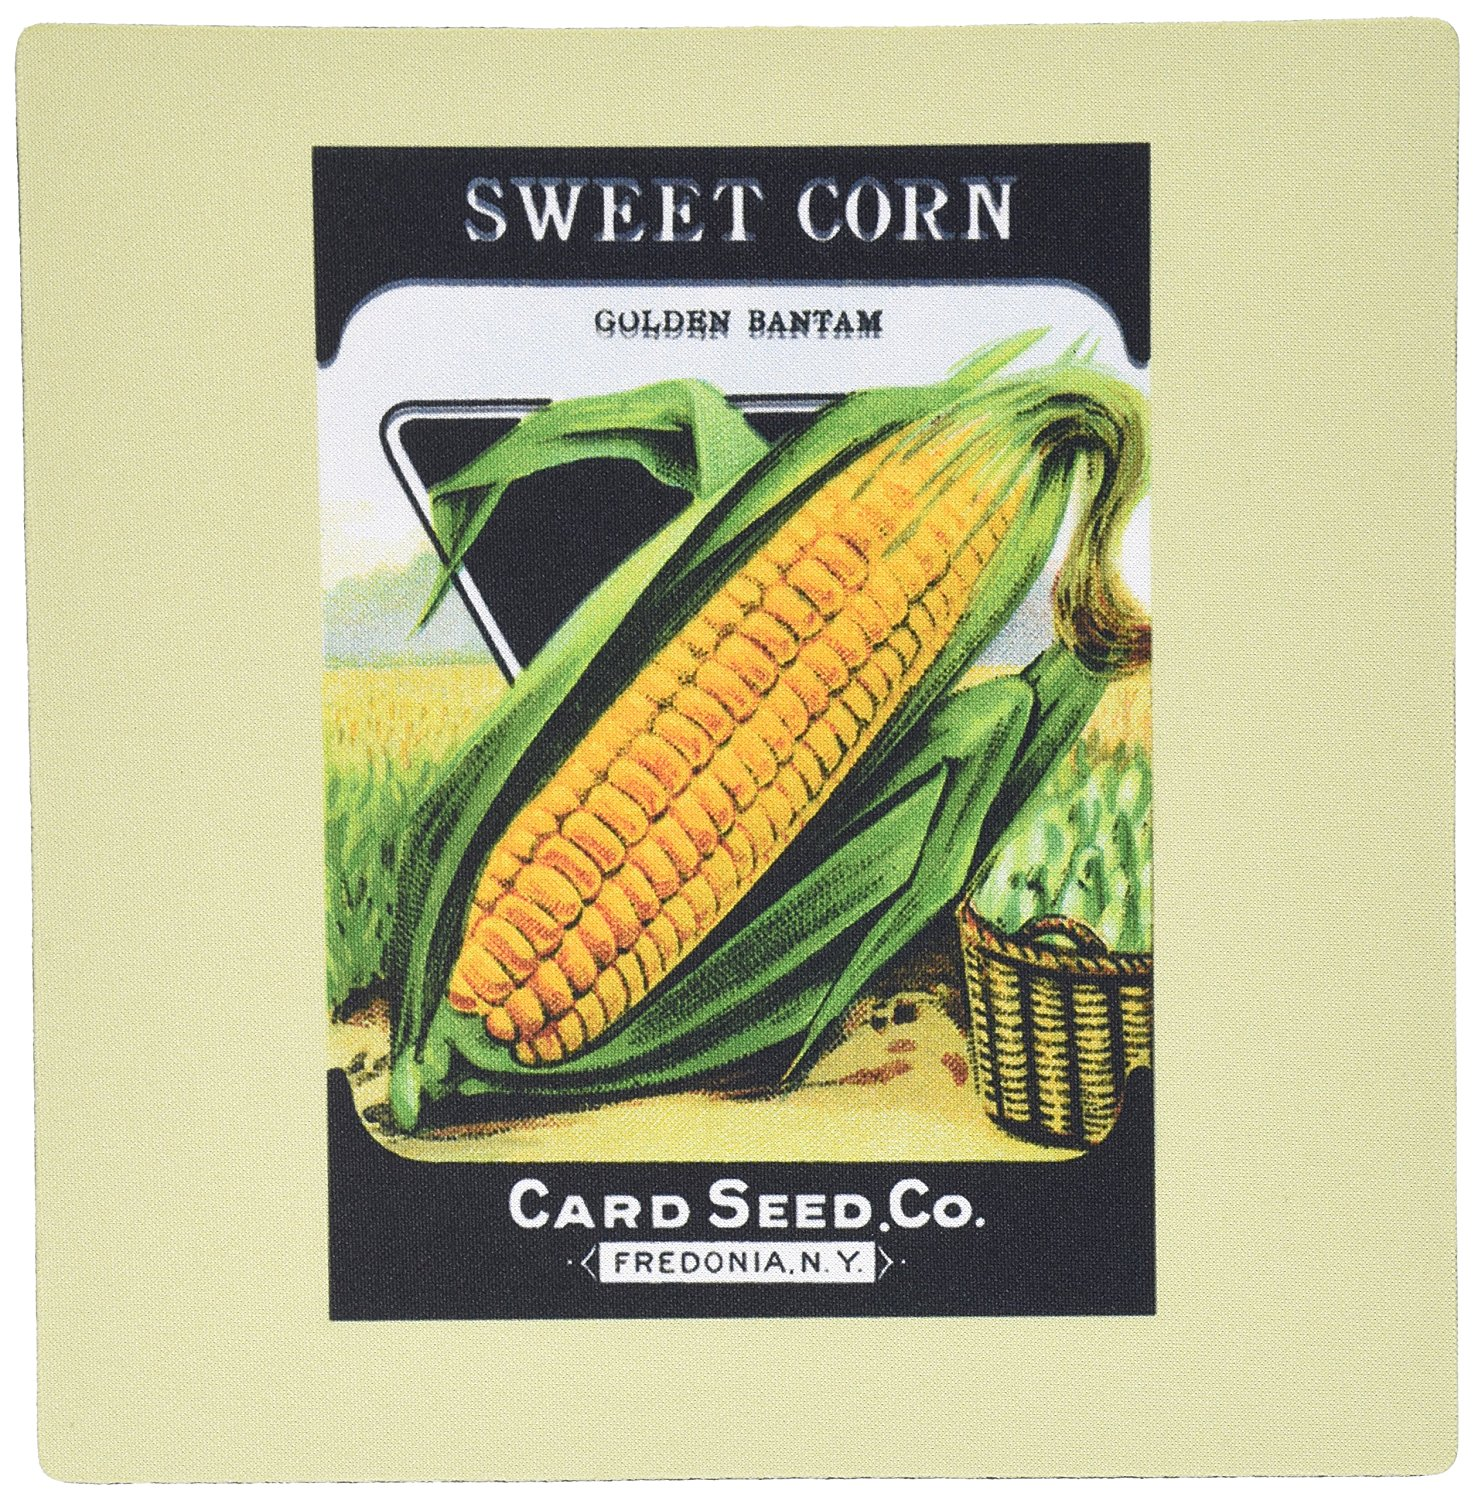 Get Quotations Rose Llc 8 X 0 25 Inches Mouse Pad Sweet Corn Golden Bantam Card